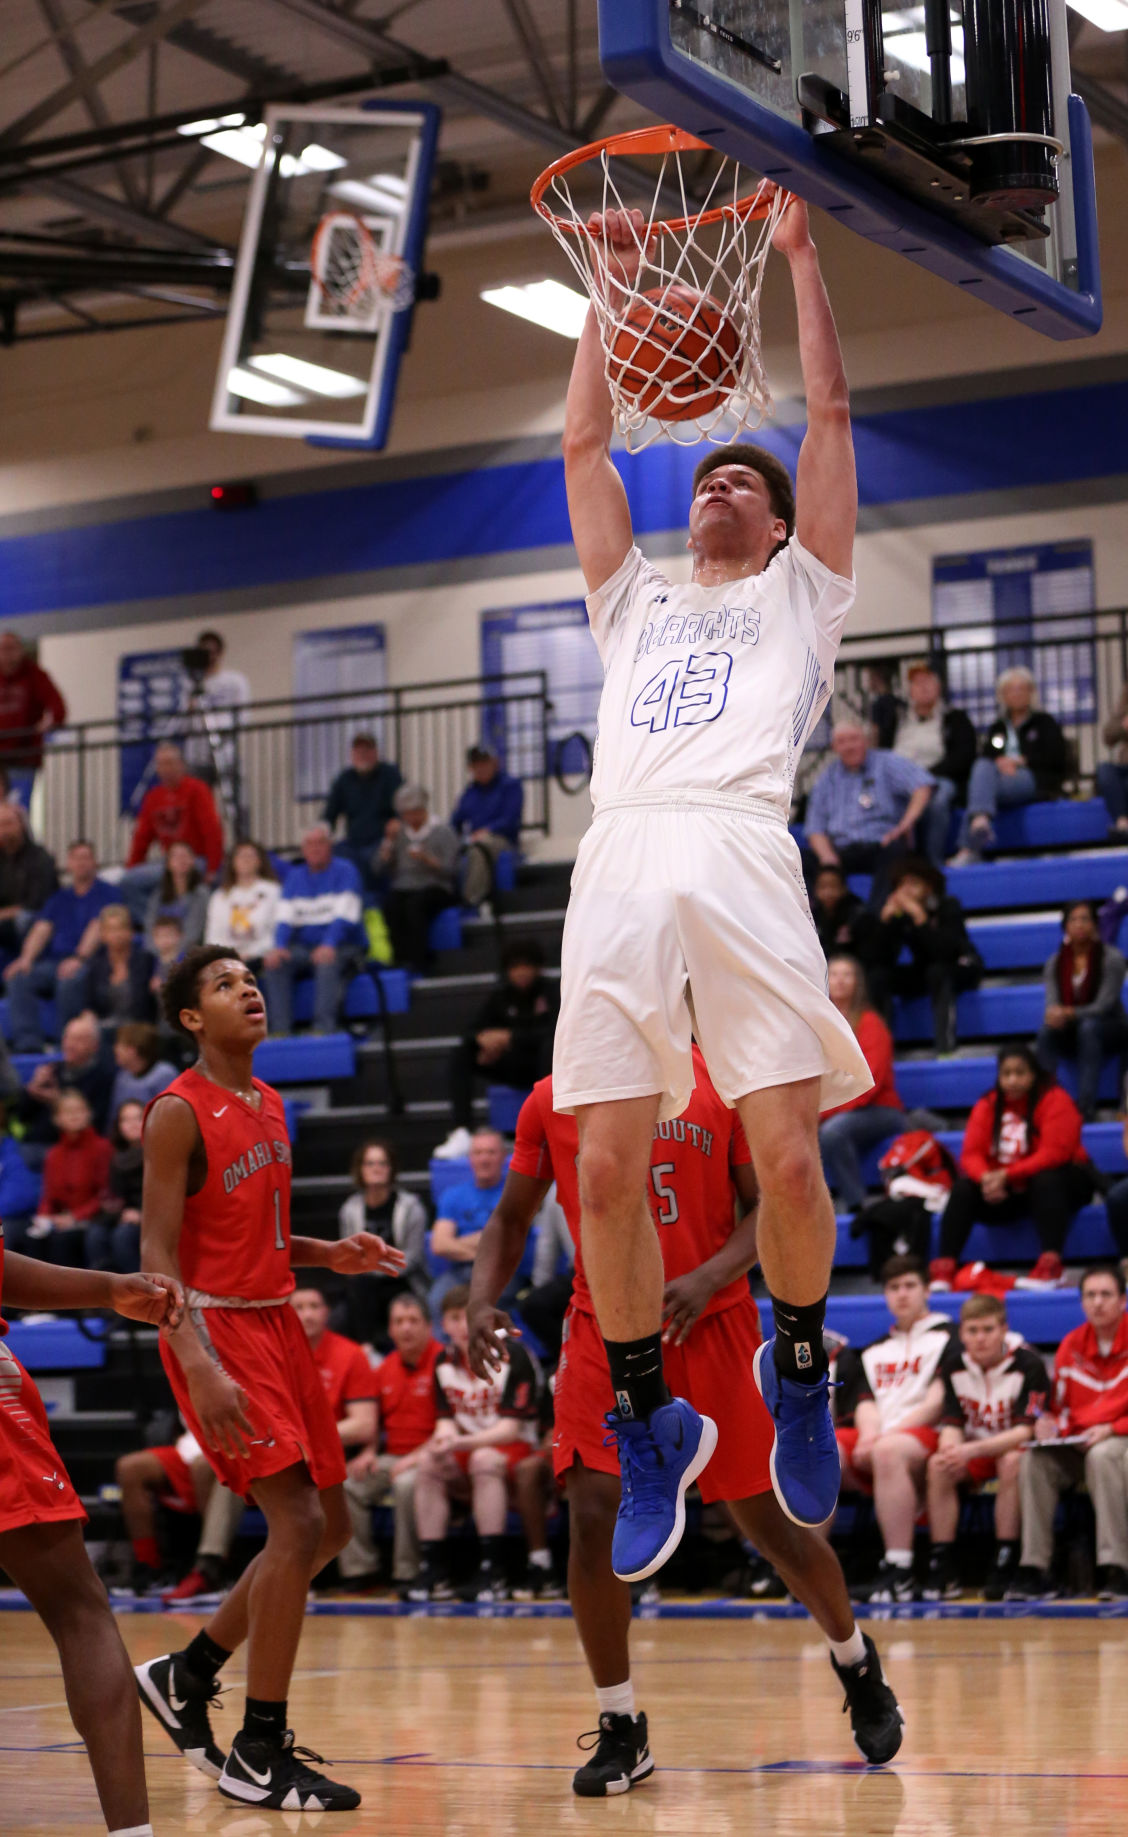 1-26-19 KHS vs Omaha South BBB2.JPG